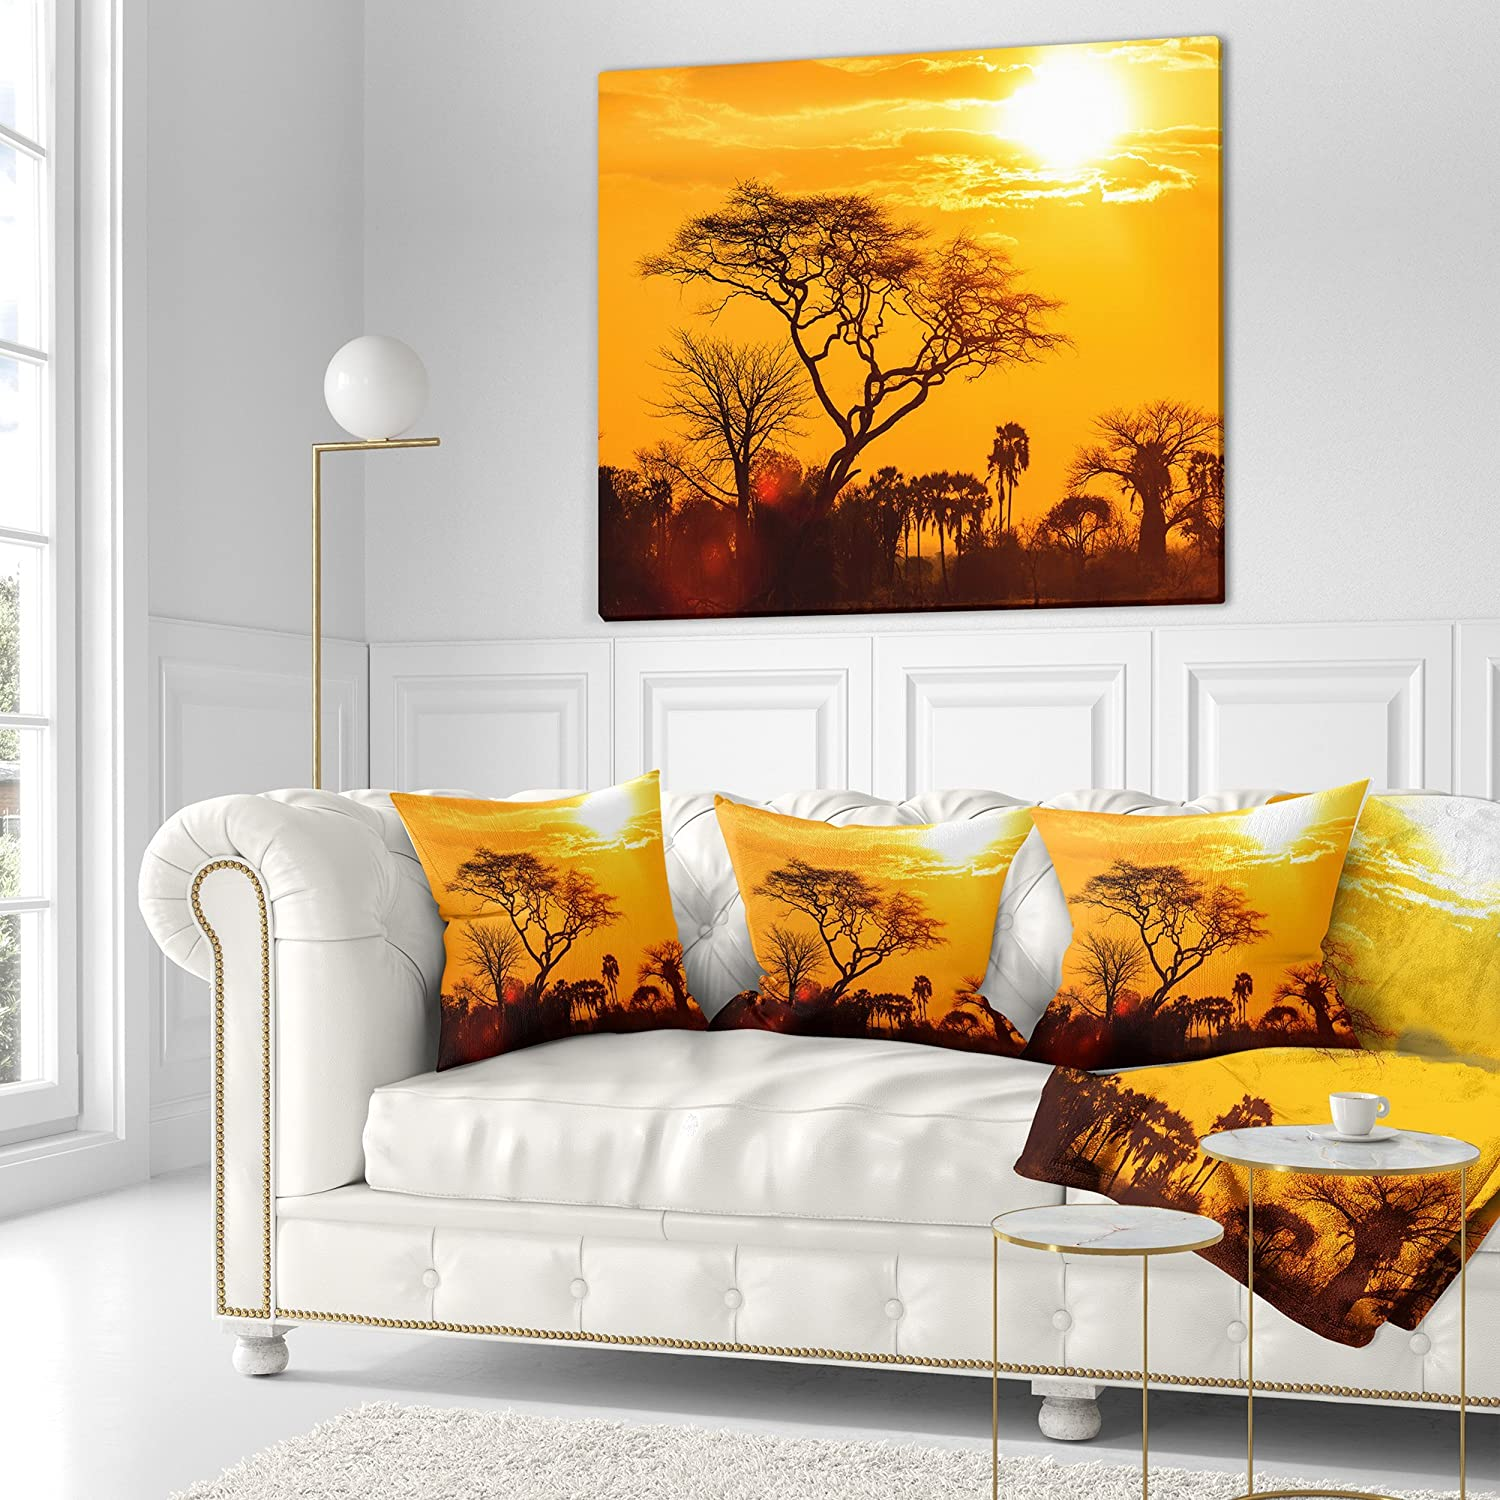 in Designart CU10884-26-26 Orange Glow of African Sunset Landscape Printed Cushion Cover for Living Room Sofa Throw Pillow 26 in x 26 in